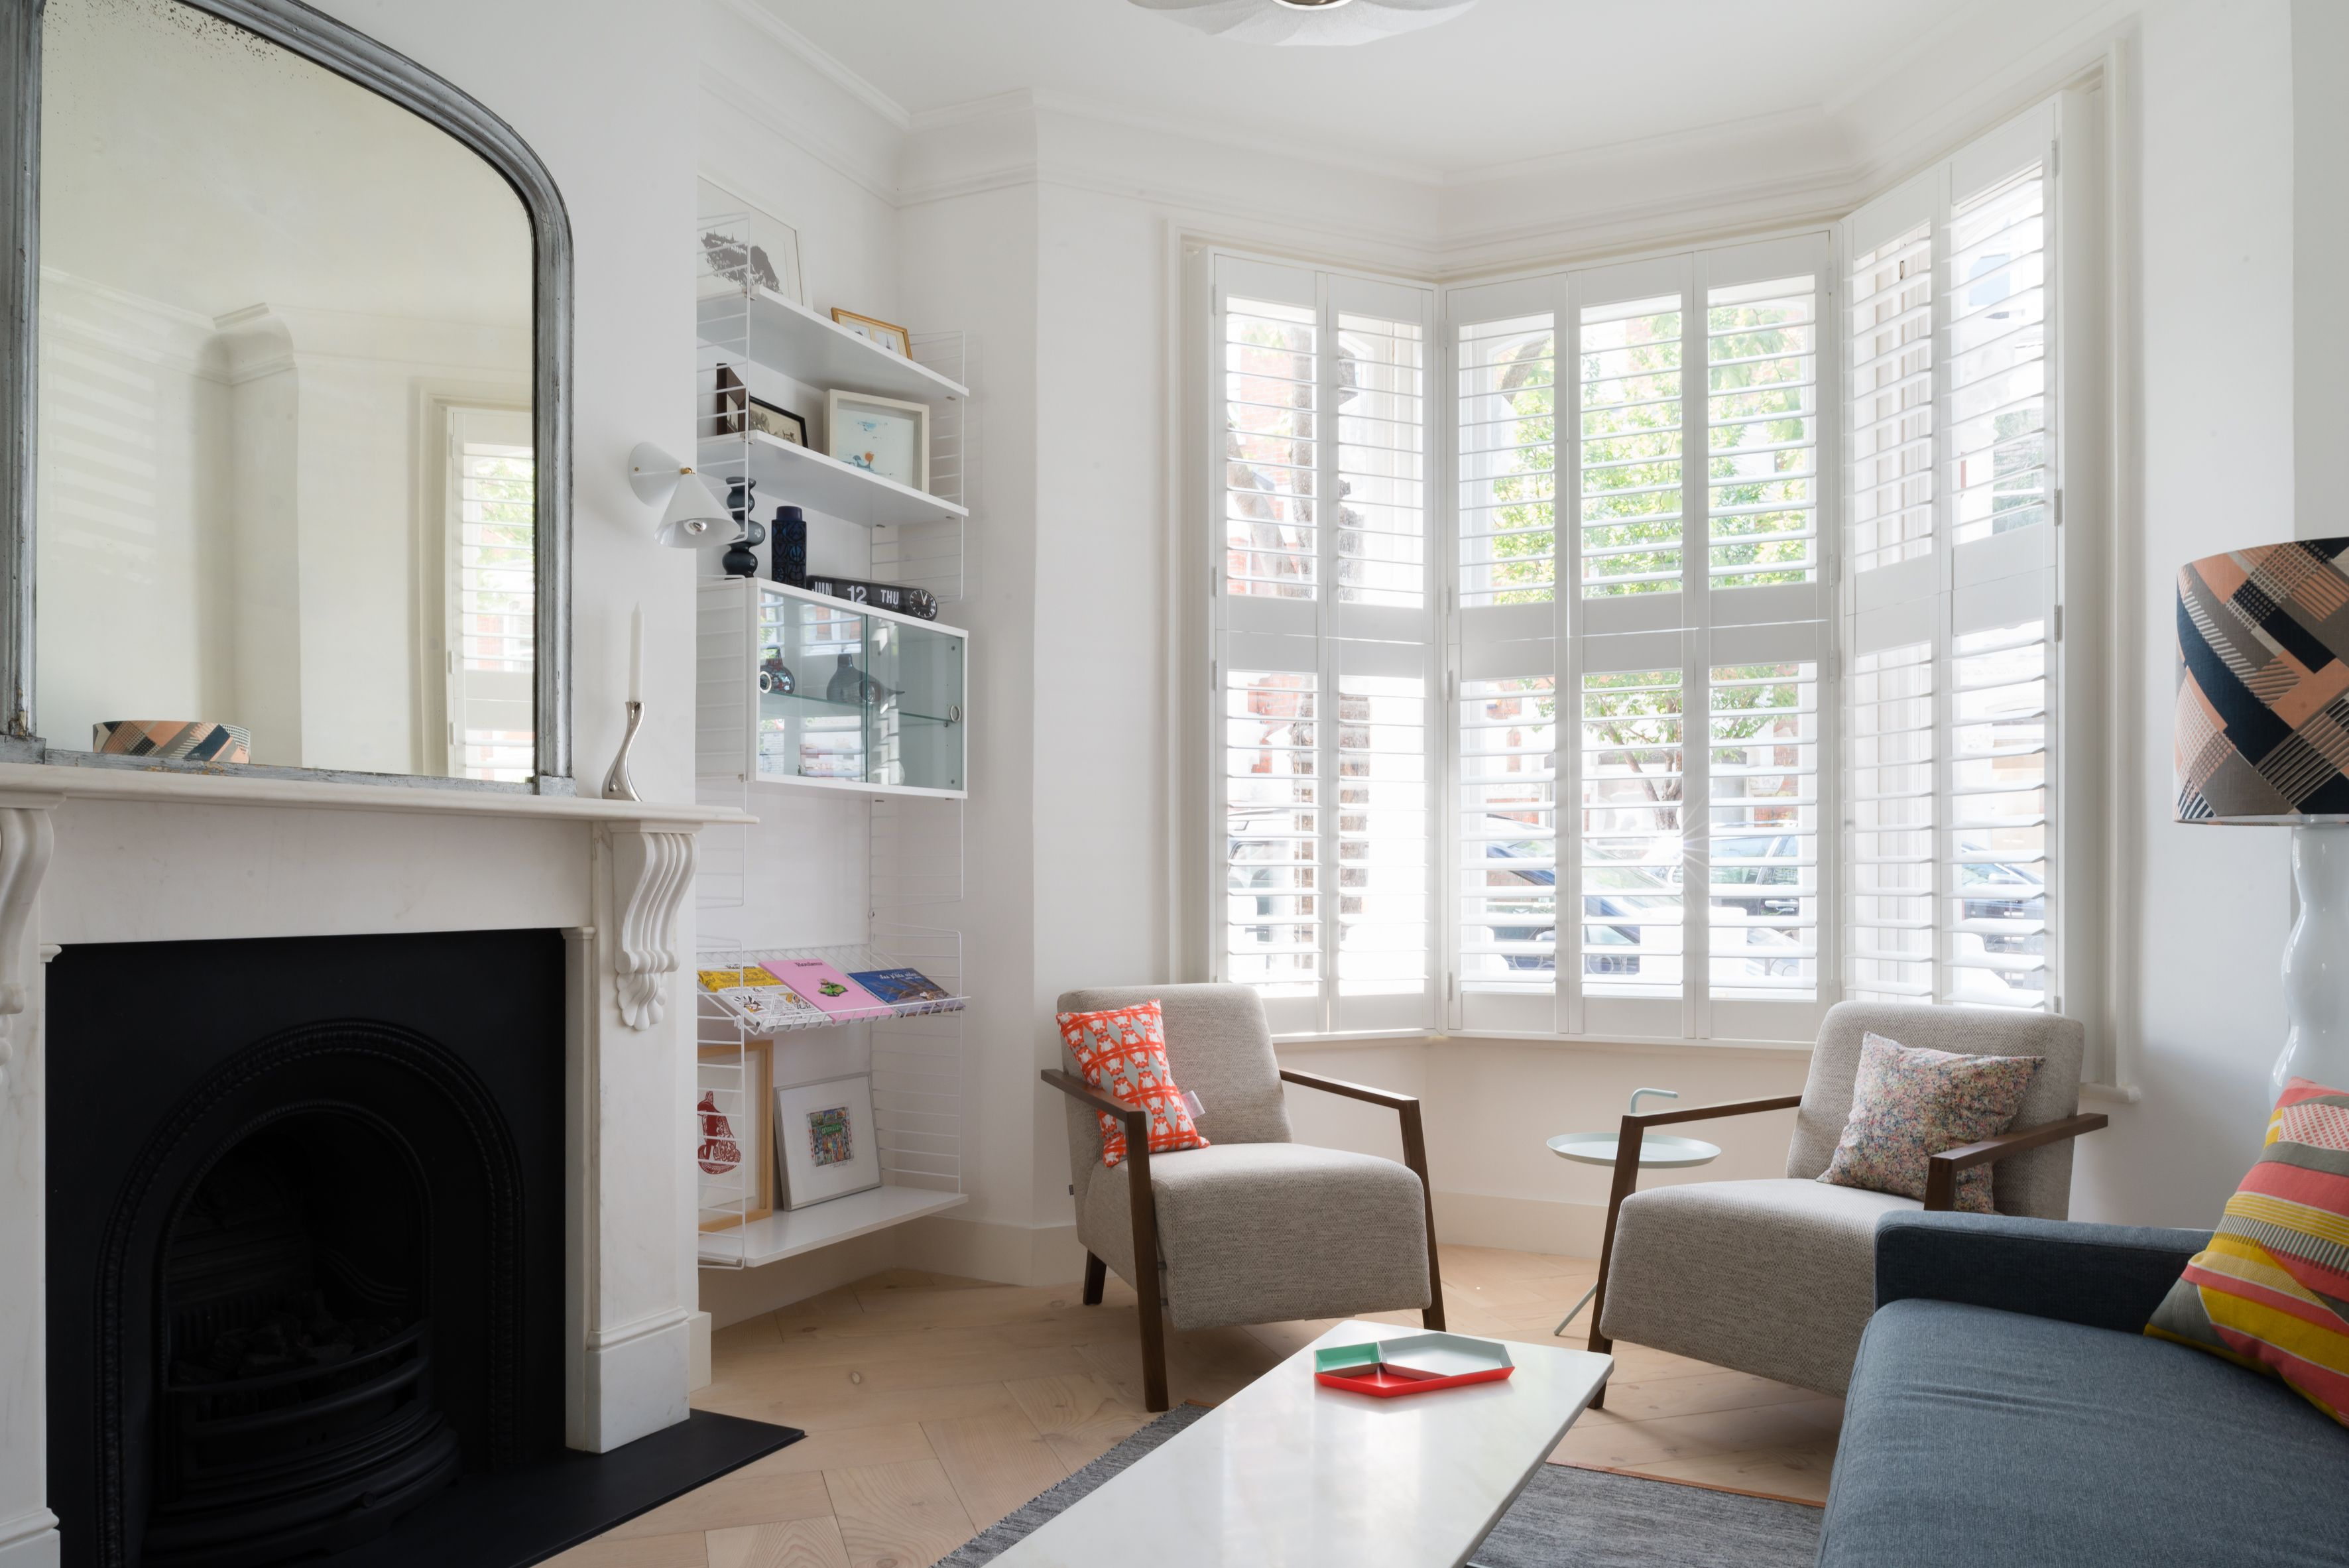 White Living Room With White Shutters And Period Fireplace Victorian Living Room White Shutters Living Room Bay Window Living Room